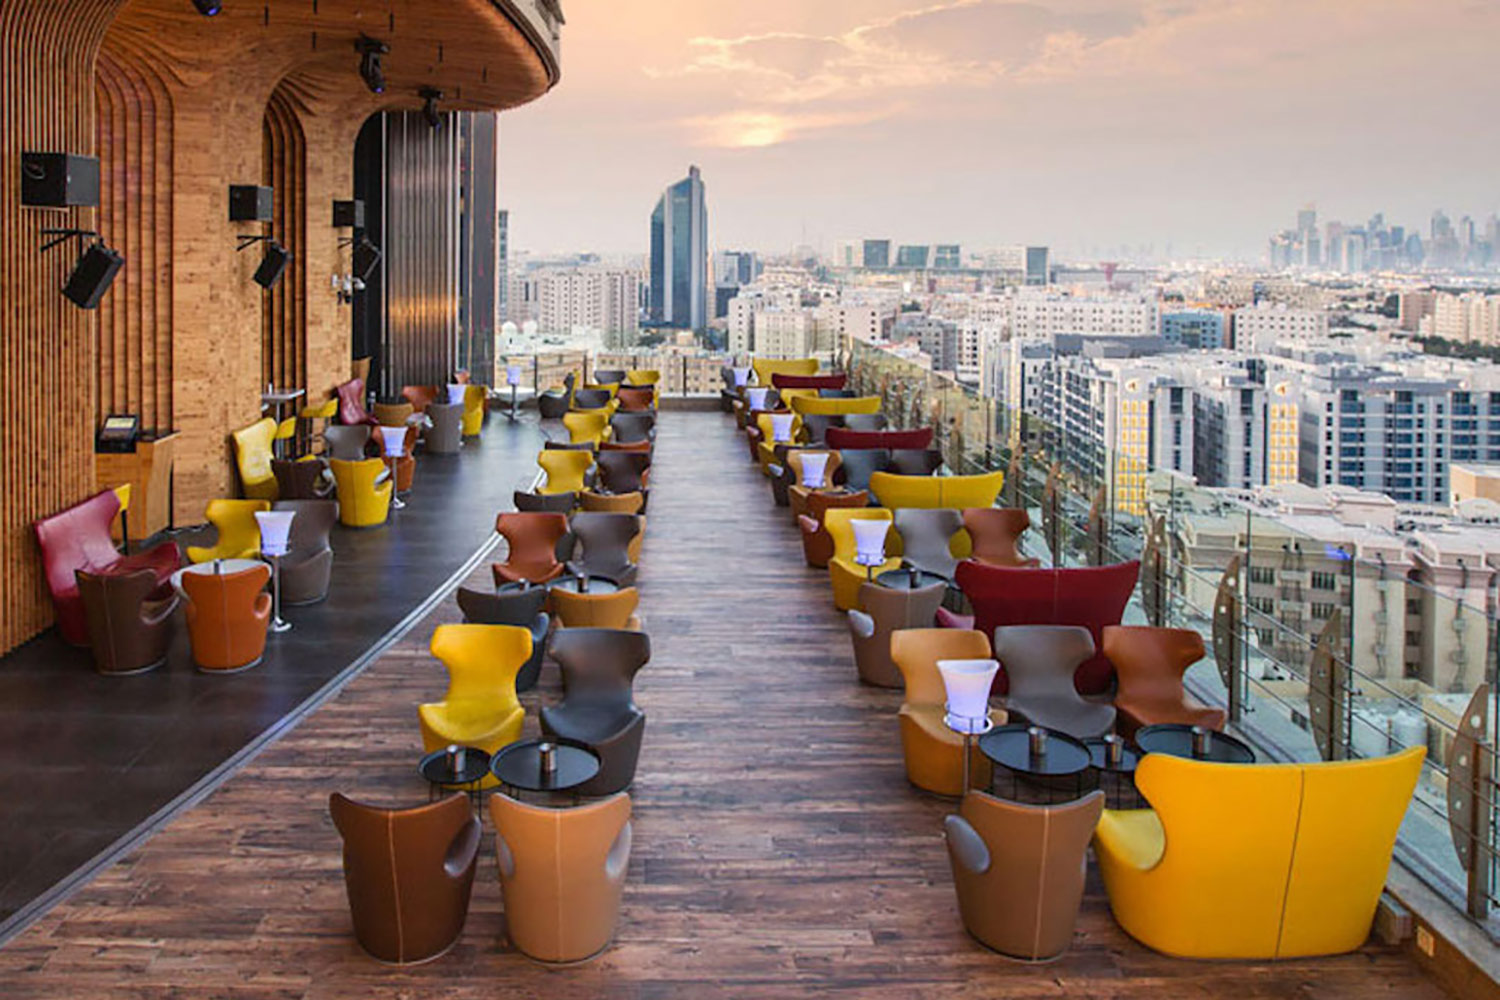 La Cigale, Doha's newest luxury hotel. WSDG performed a full acoustic makeover. Rooftop Bar 3